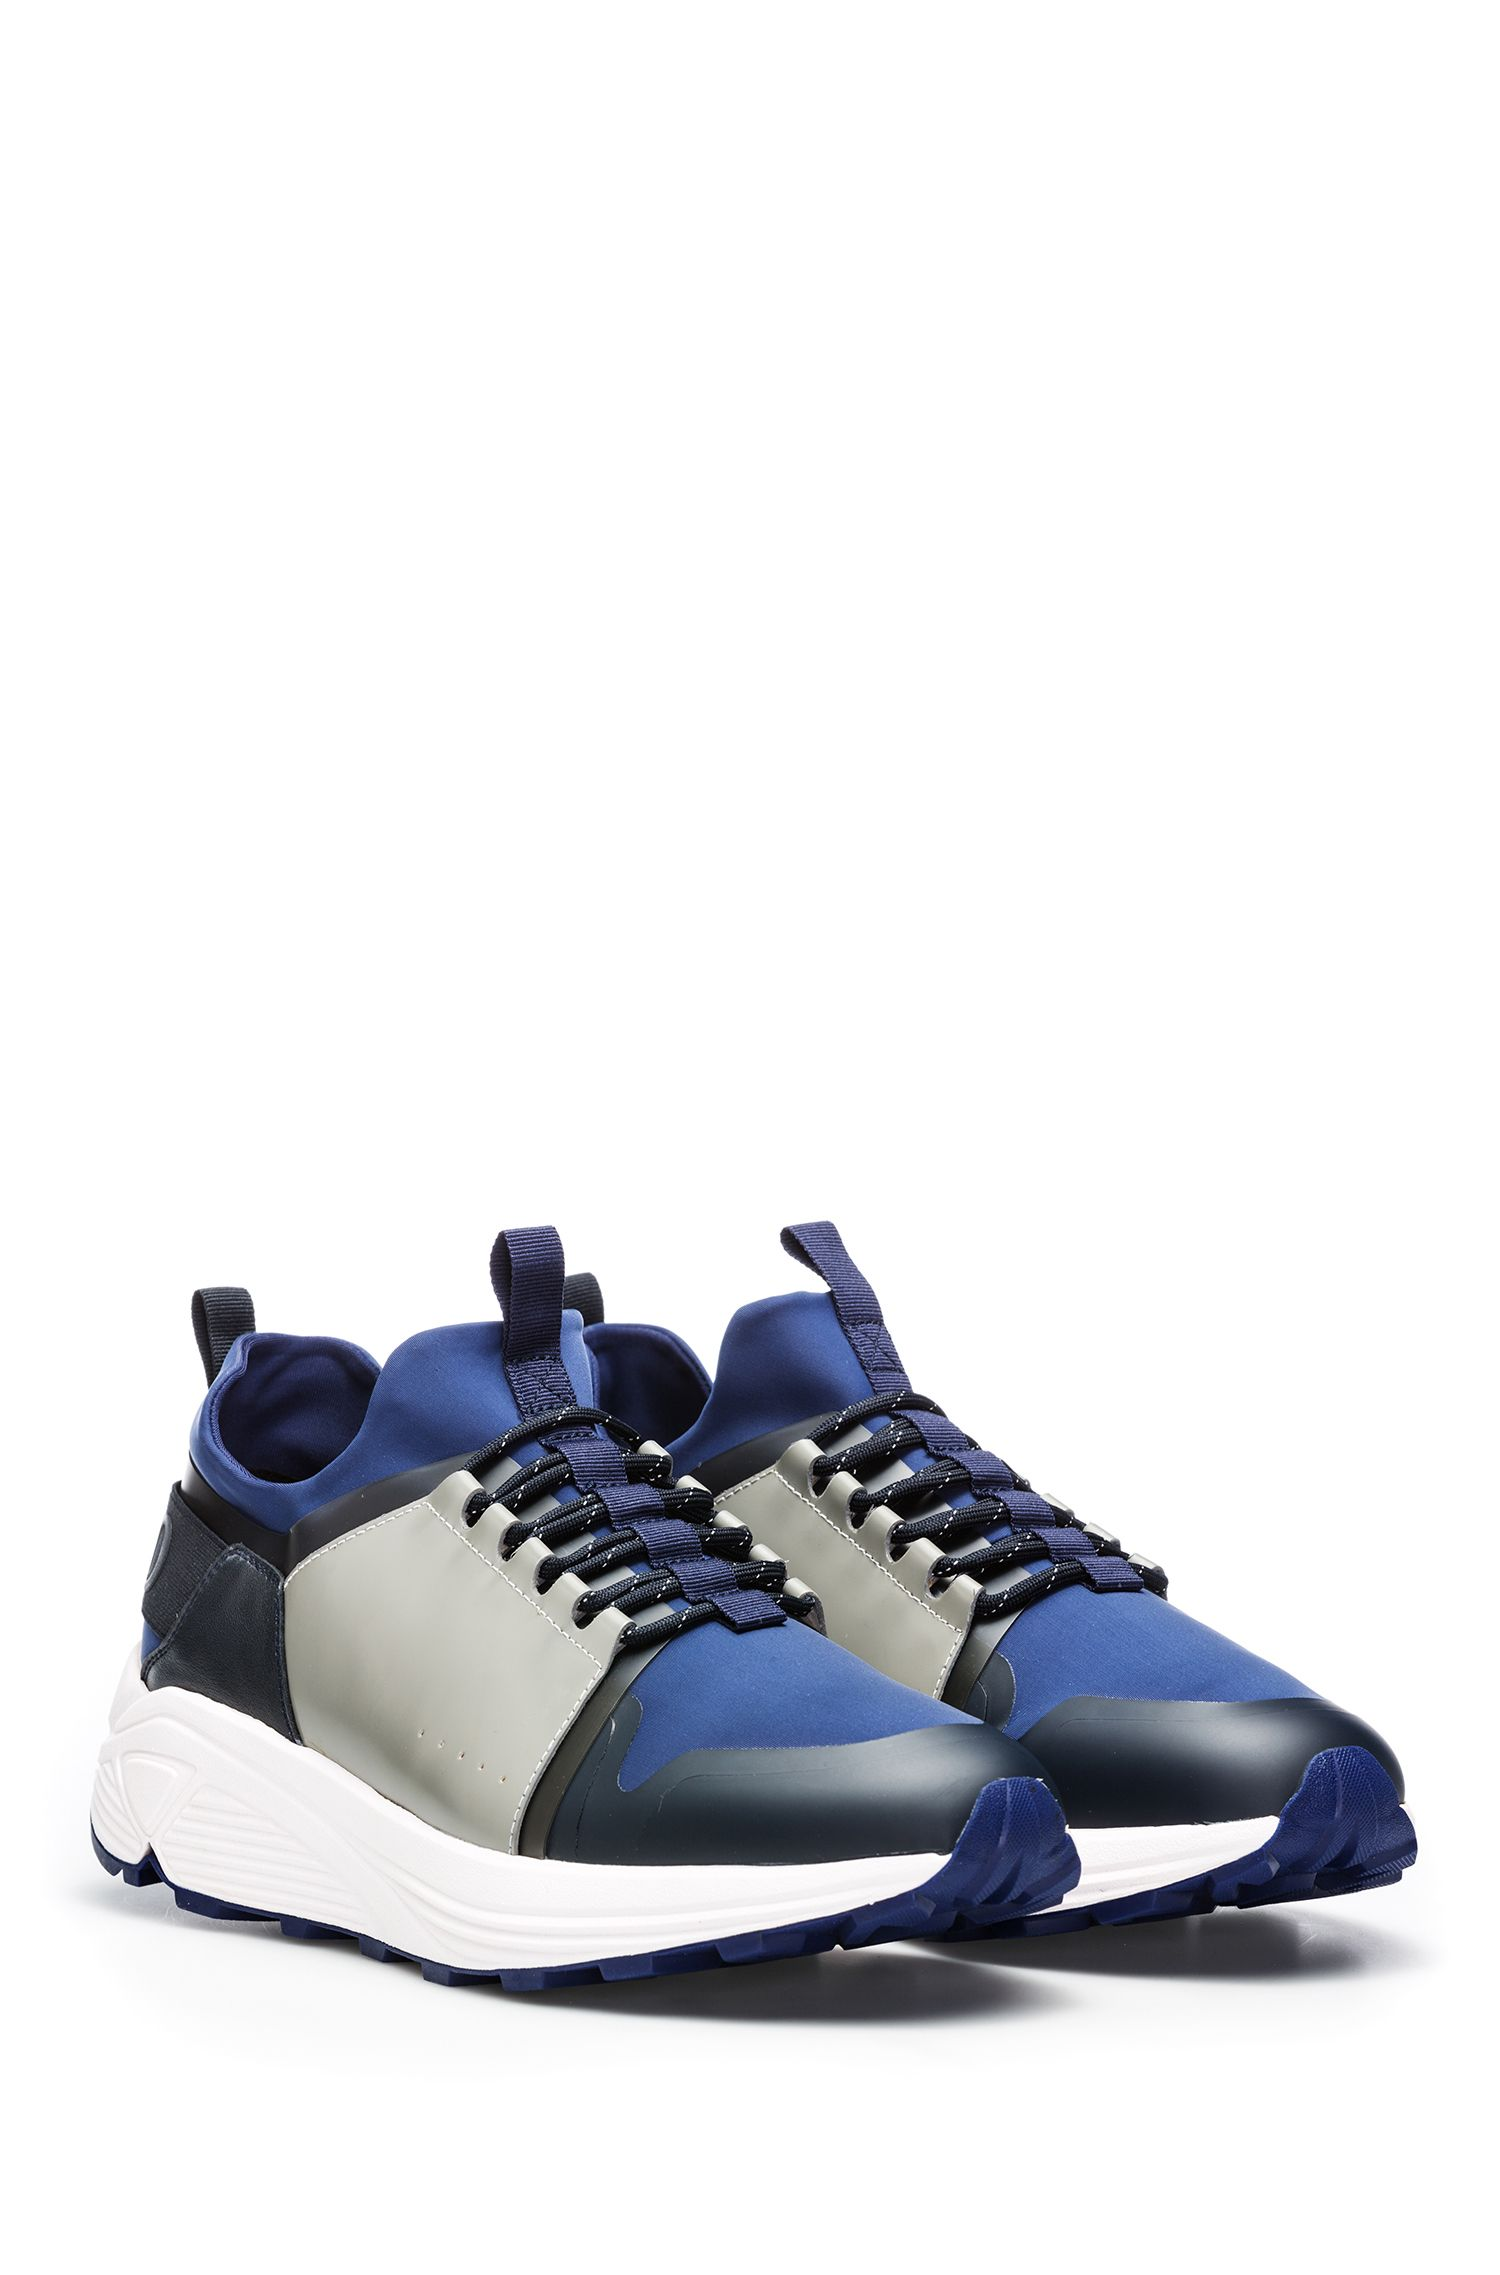 Sneakers in materiali misti con suola Vibram, Blu